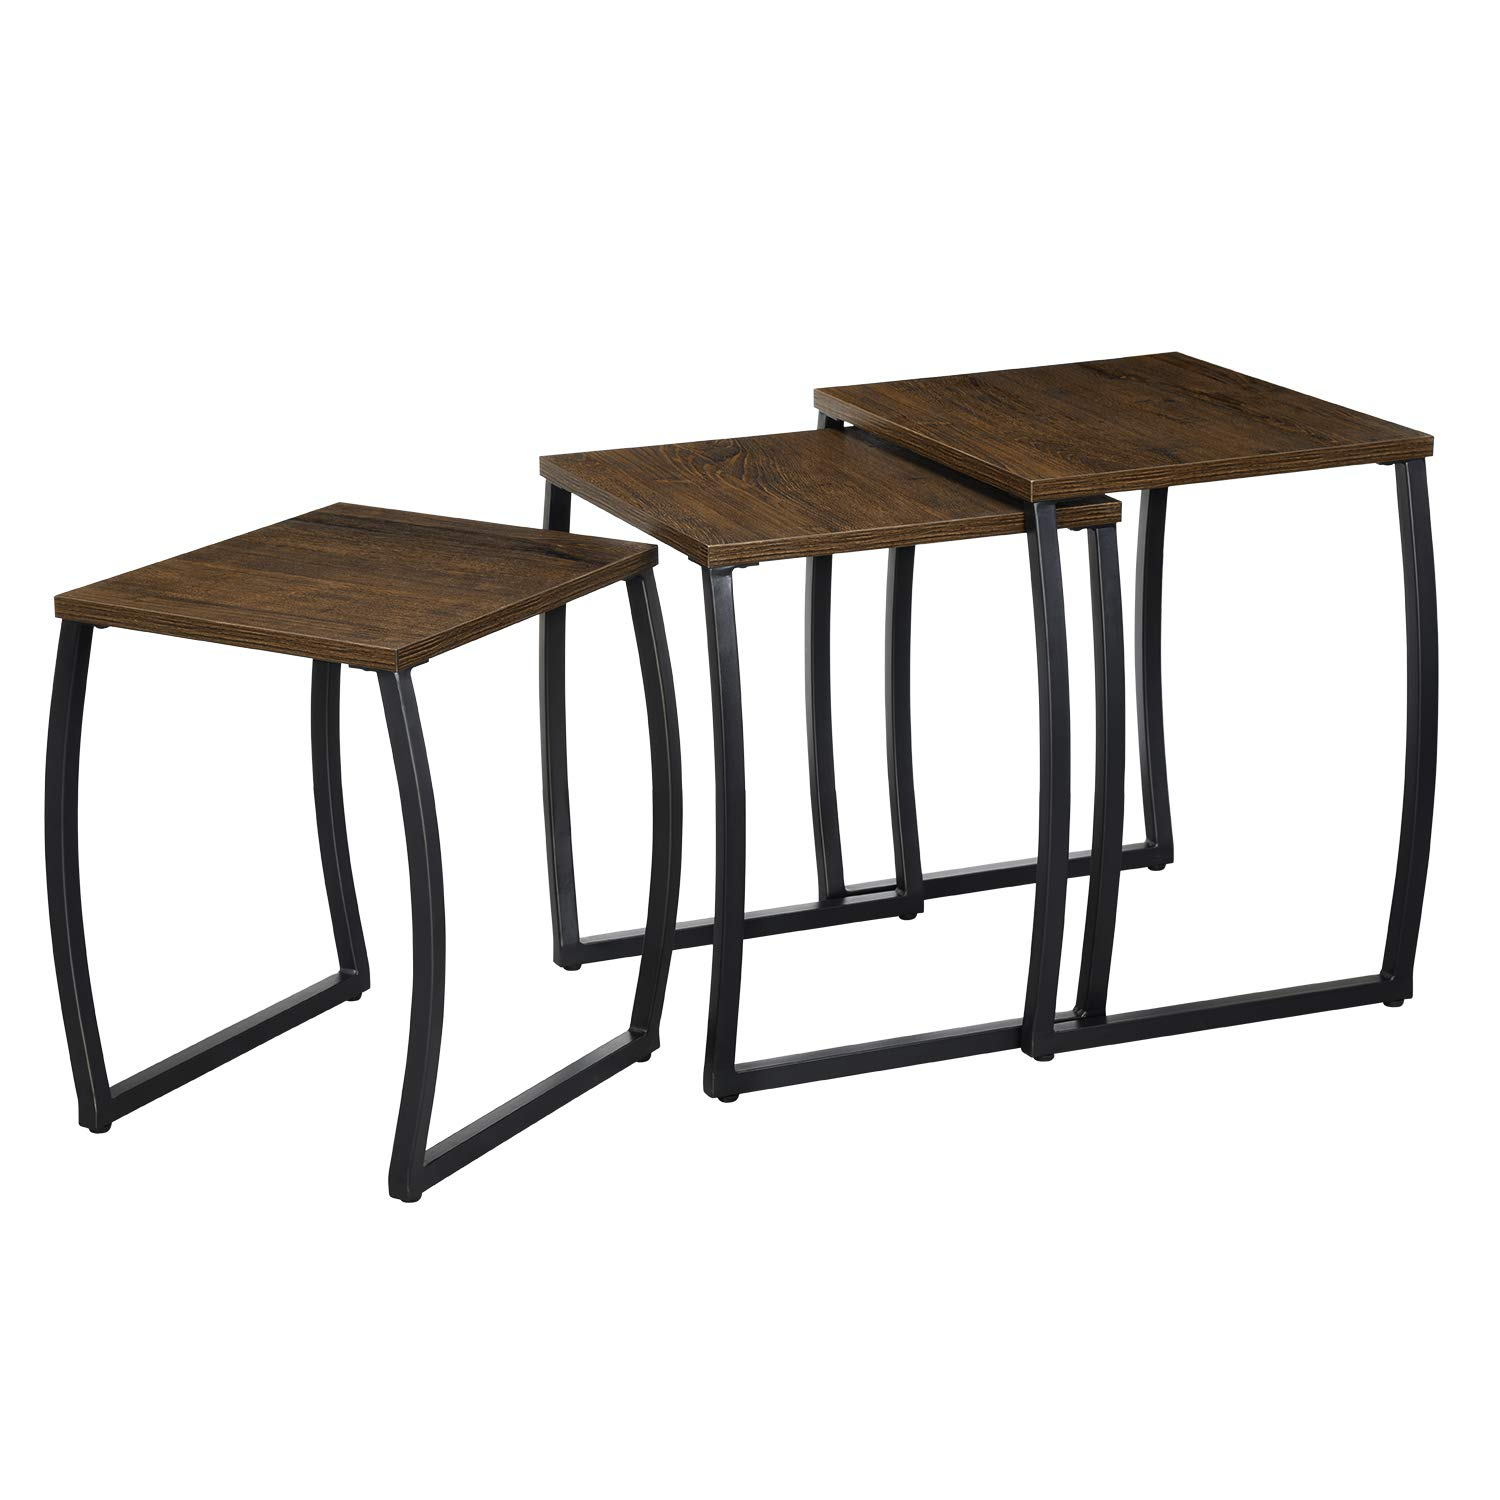 RooLee Nesting Coffee End Table, Vintage Nightstand, Side Accent Table, Sofa Snack Table Set of 3 for Living Room and Office